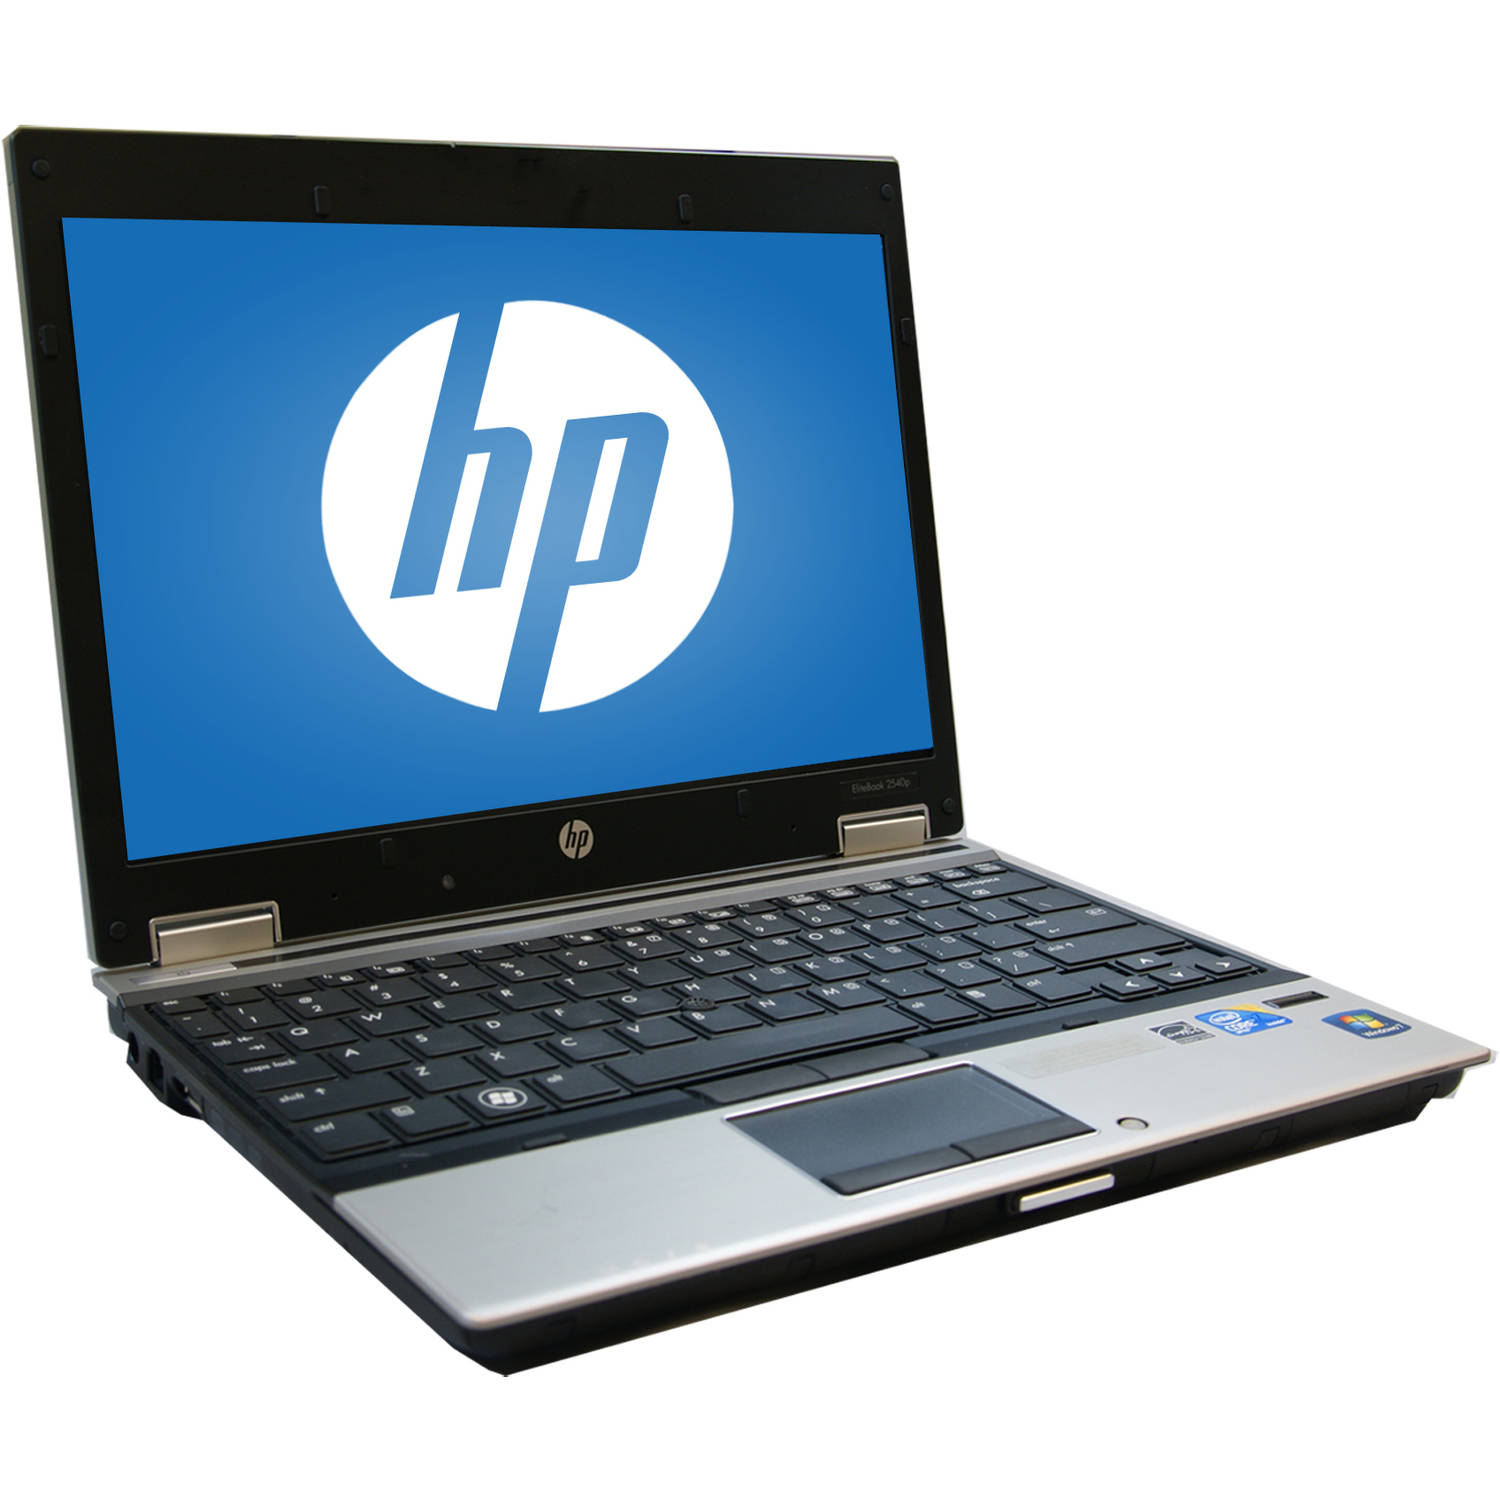 "Refurbished HP 12.1"" 2540P Laptop PC with Intel Core i7-640LM Processor, 8GB Memory, 128GB Solid State Drive and Windows 10 Pro"